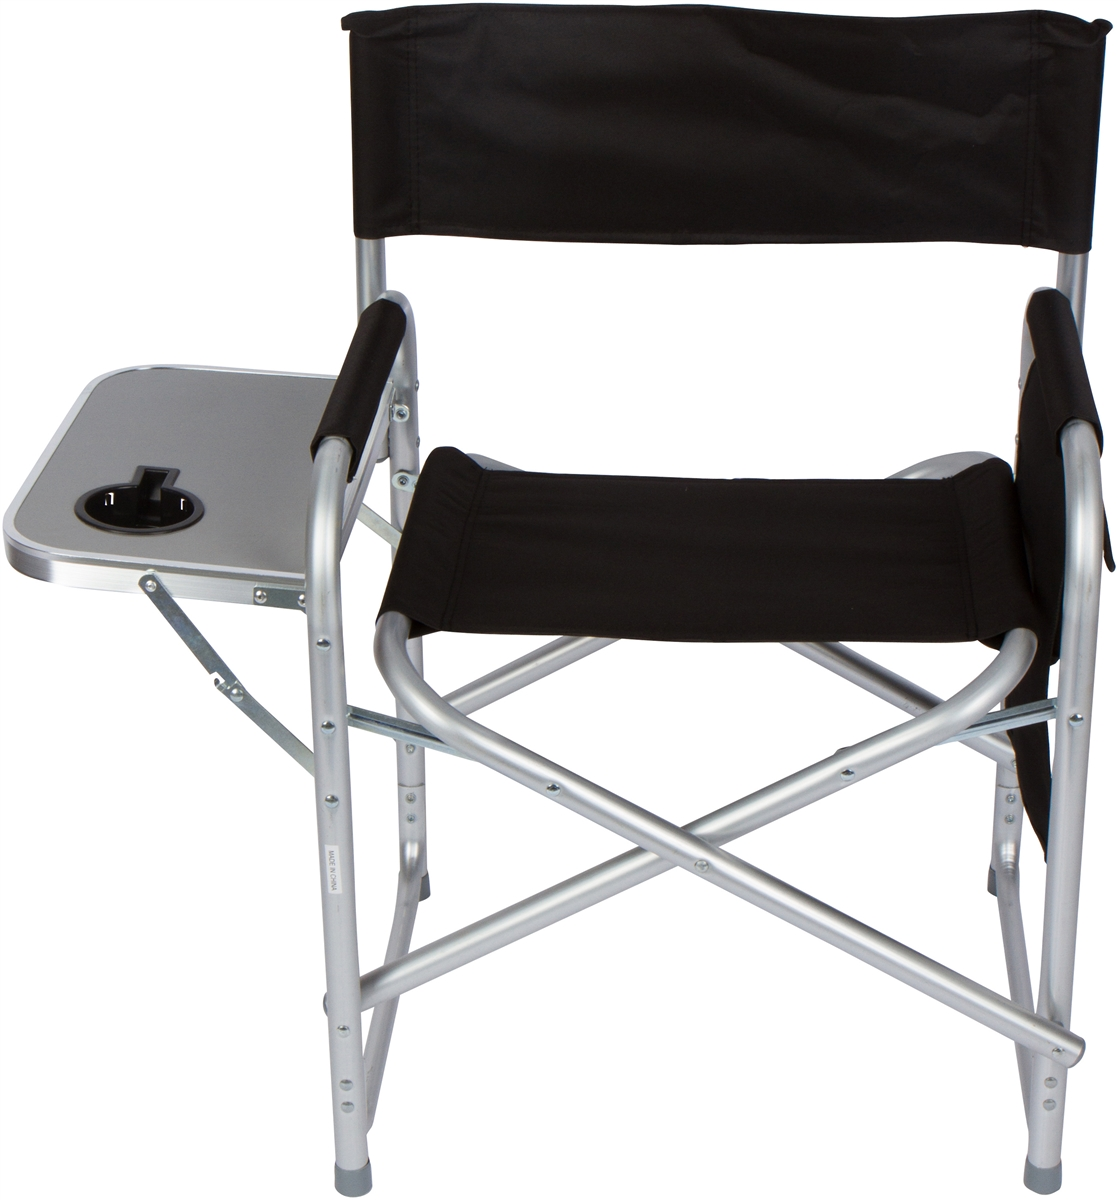 Folding Directors Chair With Side Table Folding Director S Chair With Aluminum Side Table Storage Bag And Steel Tubing By Trademark Innovations